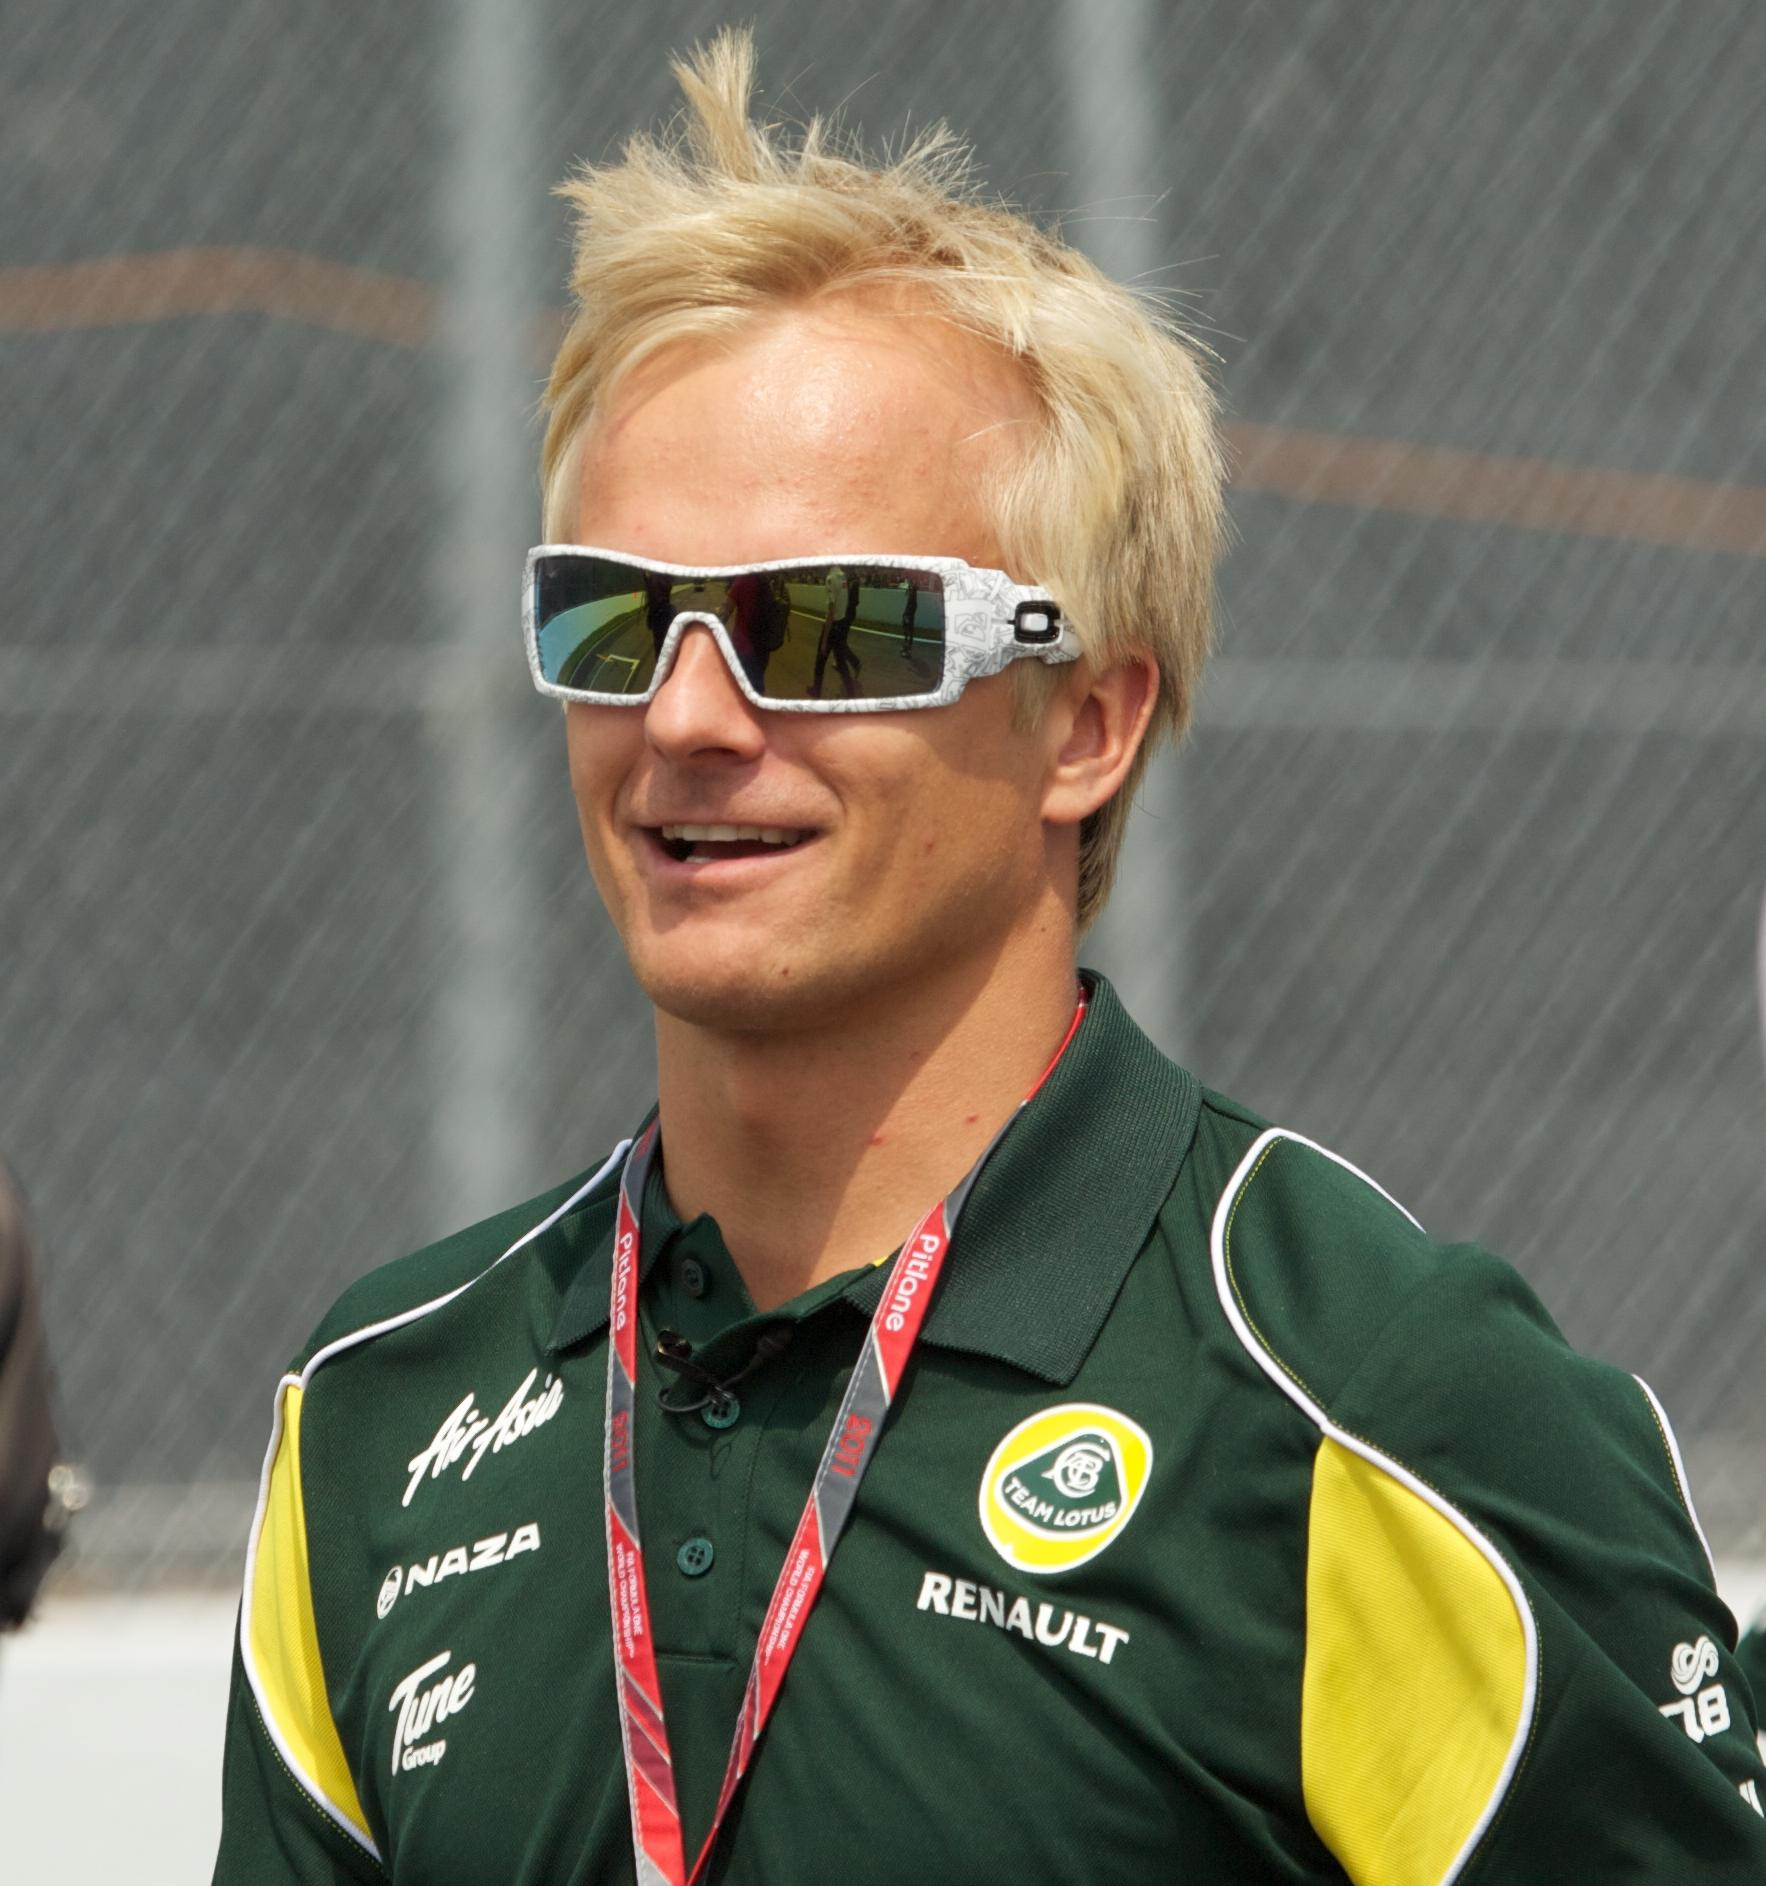 Heikki Kovalainen earned a  million dollar salary, leaving the net worth at 6.3 million in 2017